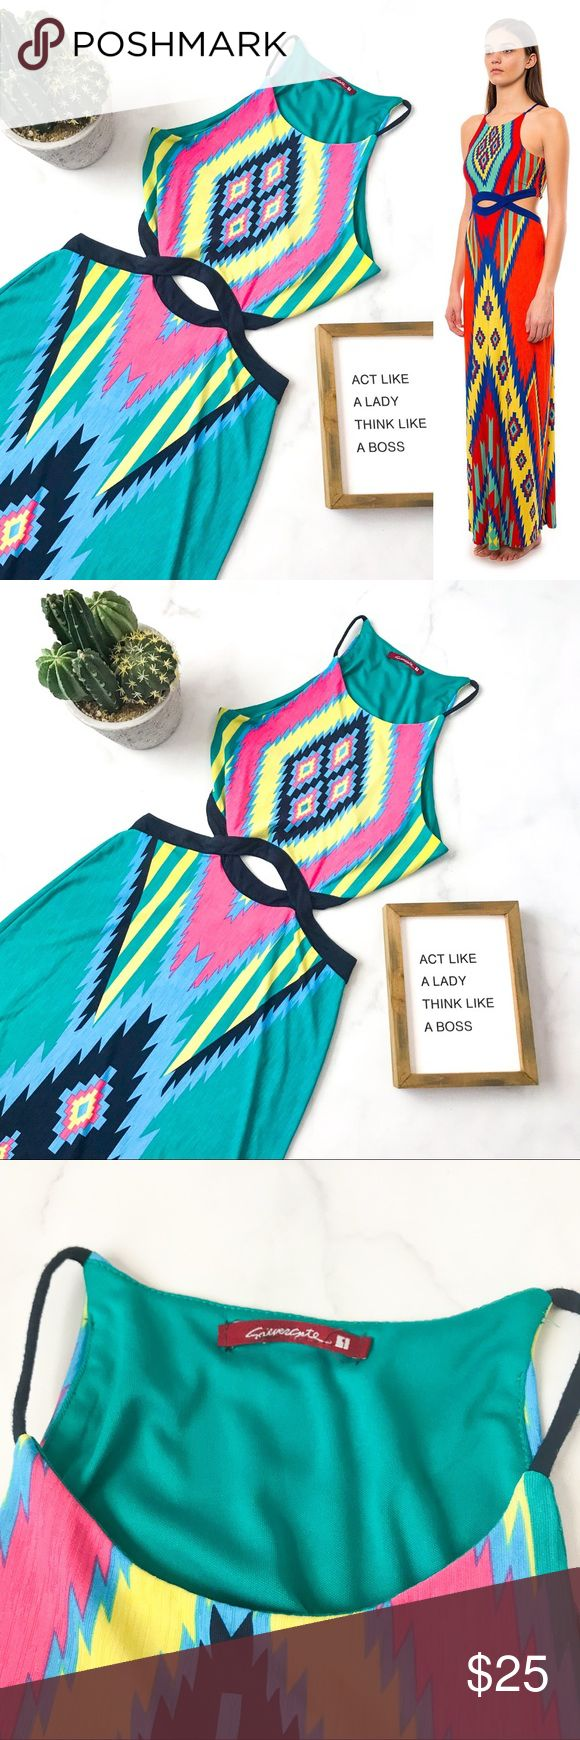 Silvergate Aztec Cutout Maxi Dress Pre-loved but in great condition! Minimal signs of wear. No stains, snags, or tears. (002-0000)   PRODUCT DETAILS: •Size: Medium •Colors: Teal, Pink, Yellow, Black, Blue  •Made in Vietnam •Measurements: Chest-14.5inch Waist-13inch Length-60+inch • 95% polyester, 5% spandex •Style number: IDA227C-BREP •Machine Wash •Cutout Back And Sides •Tribal Aztec Print •High Neck •Sleeveless  Tags: green navy summer beach pool cover up southwestern Silvergate Dresses…